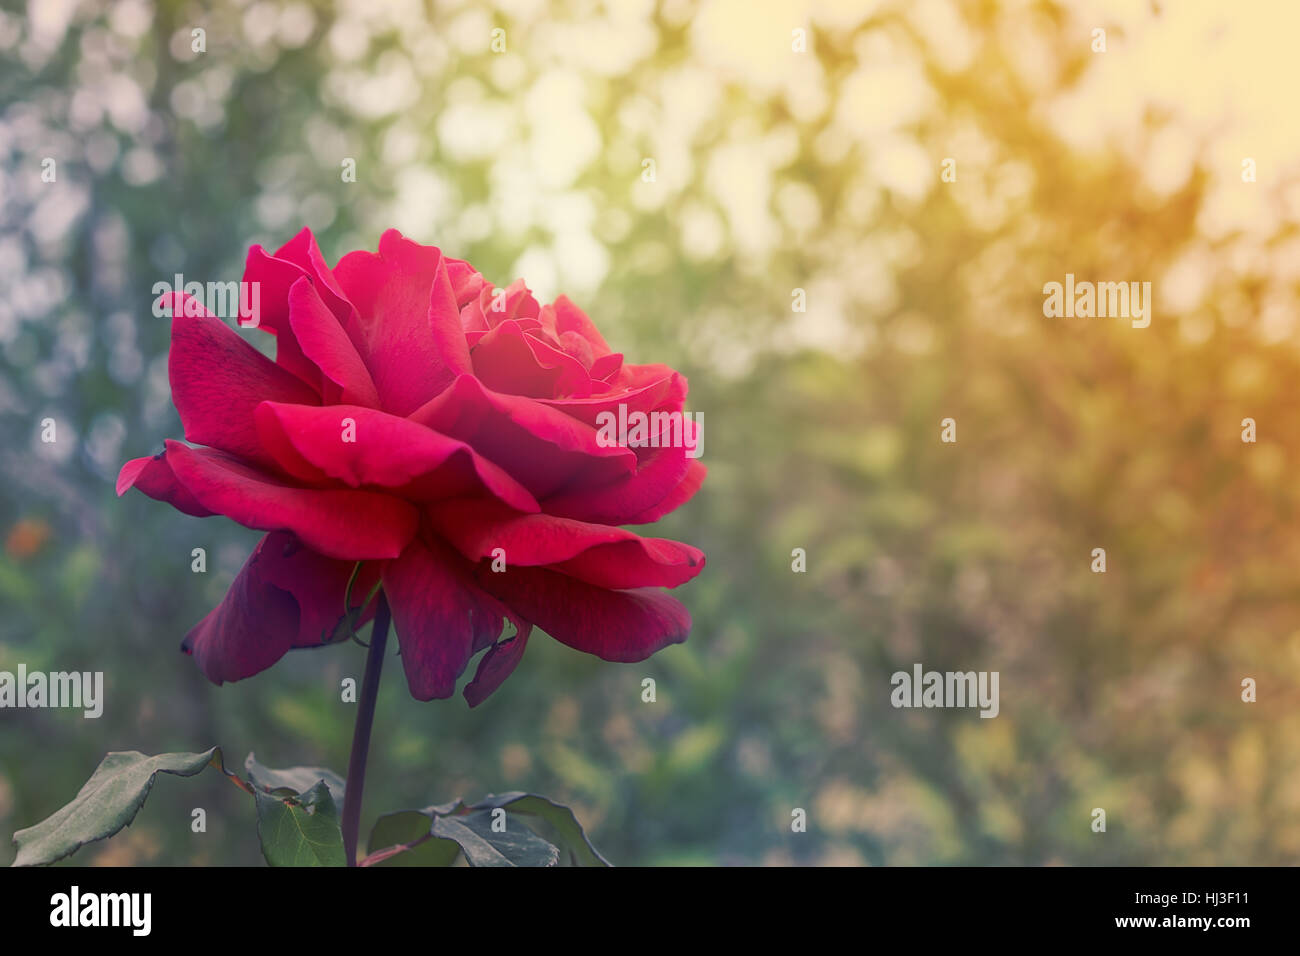 Condolence card stock photos condolence card stock images alamy red rose flower on condolences background for sympathy greeting card for death funeral or tragedy m4hsunfo